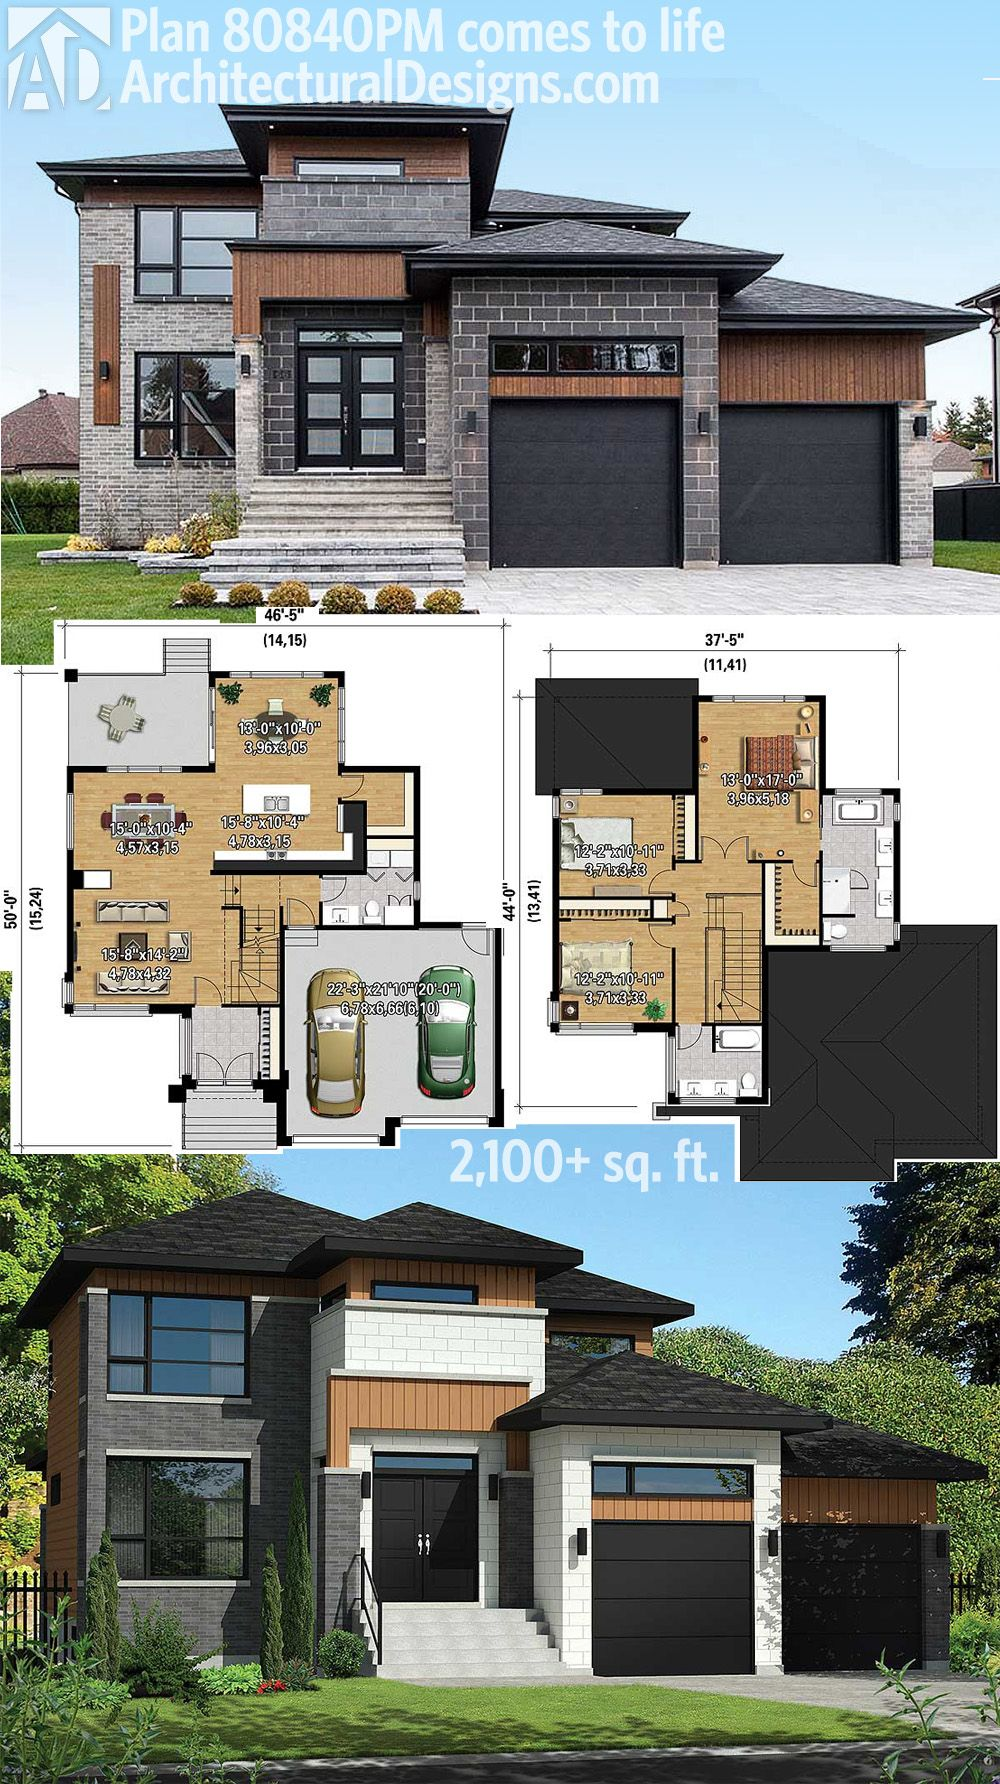 Contemporary House Design With Exterior Ceramic Panels And: Plan 80840PM: Multi-Level Modern House Plan